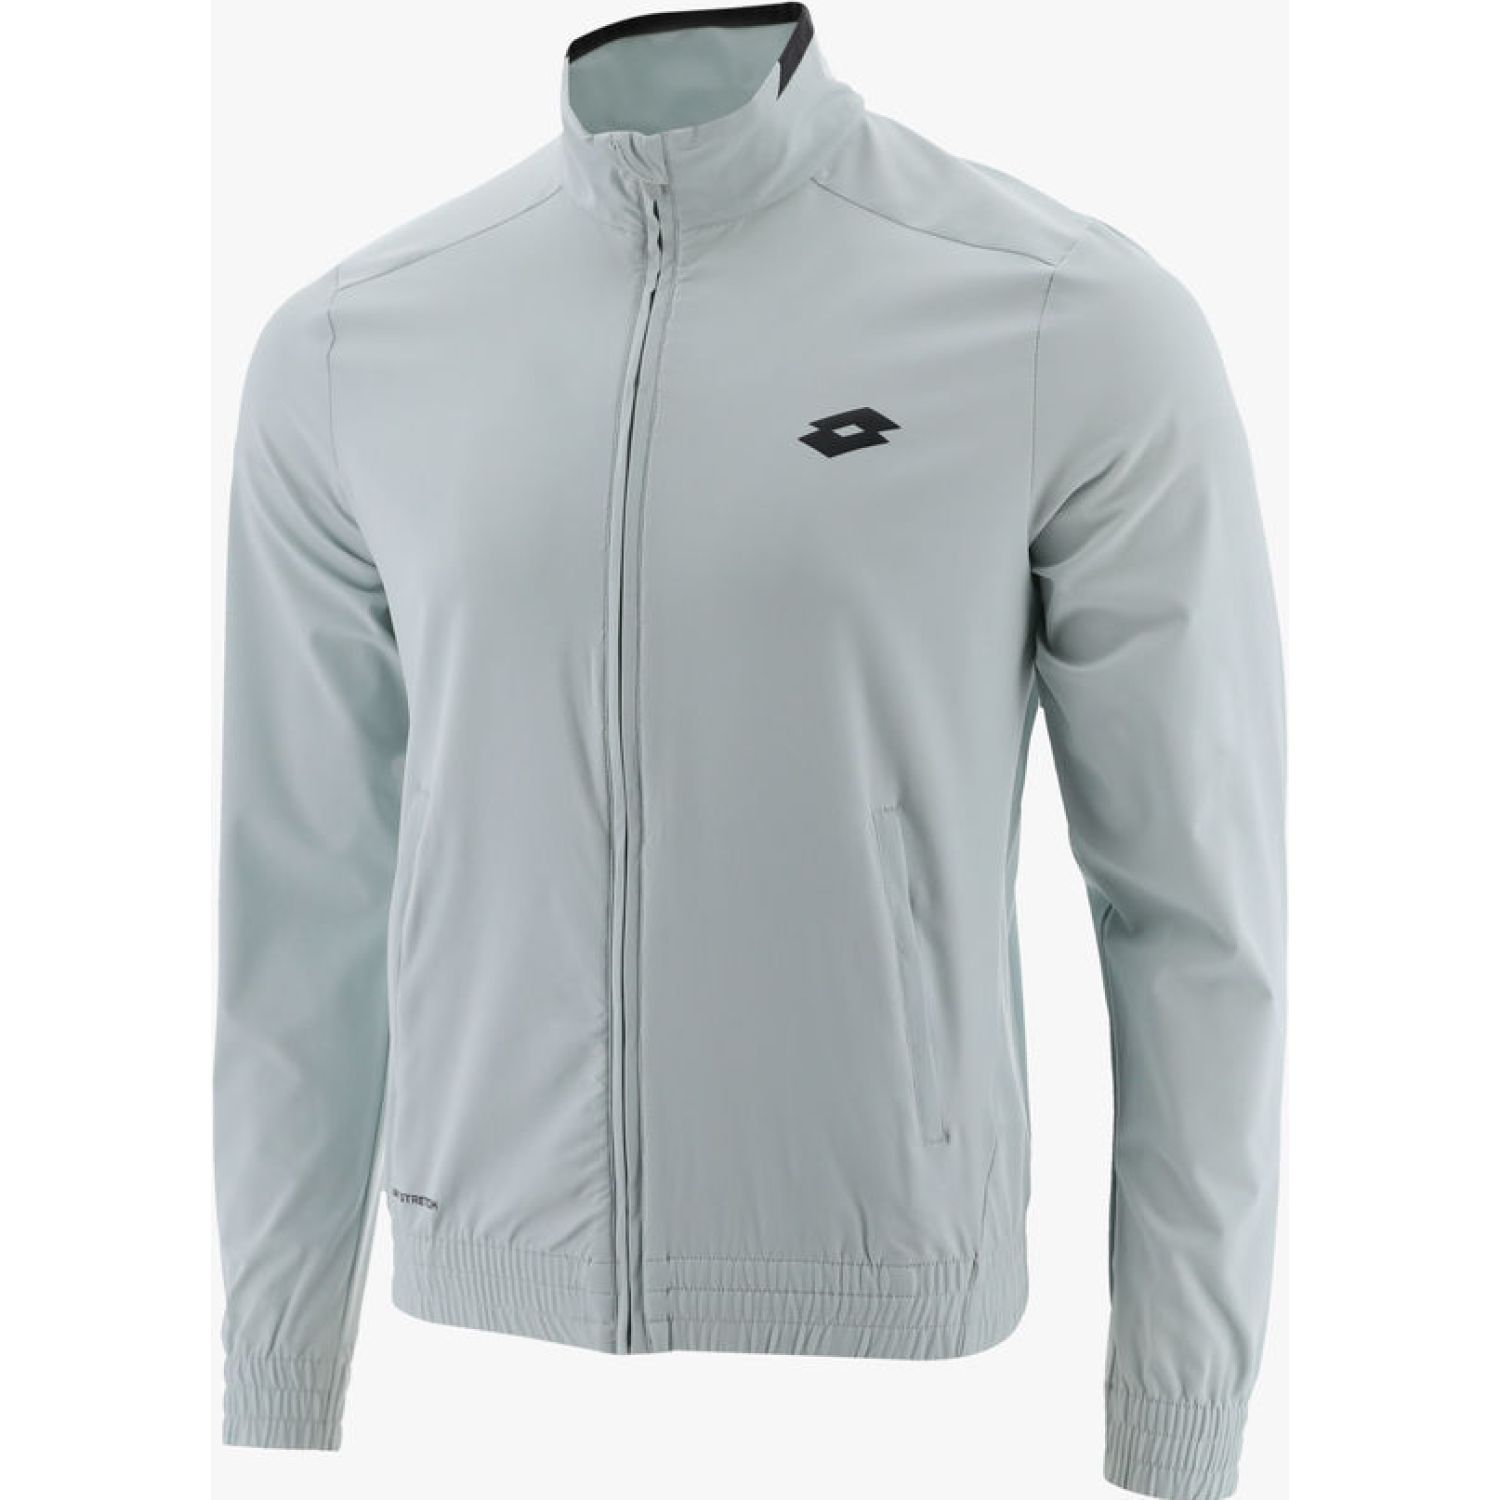 Lotto tennis tech jacket pl Blanco Casacas de Atletismo